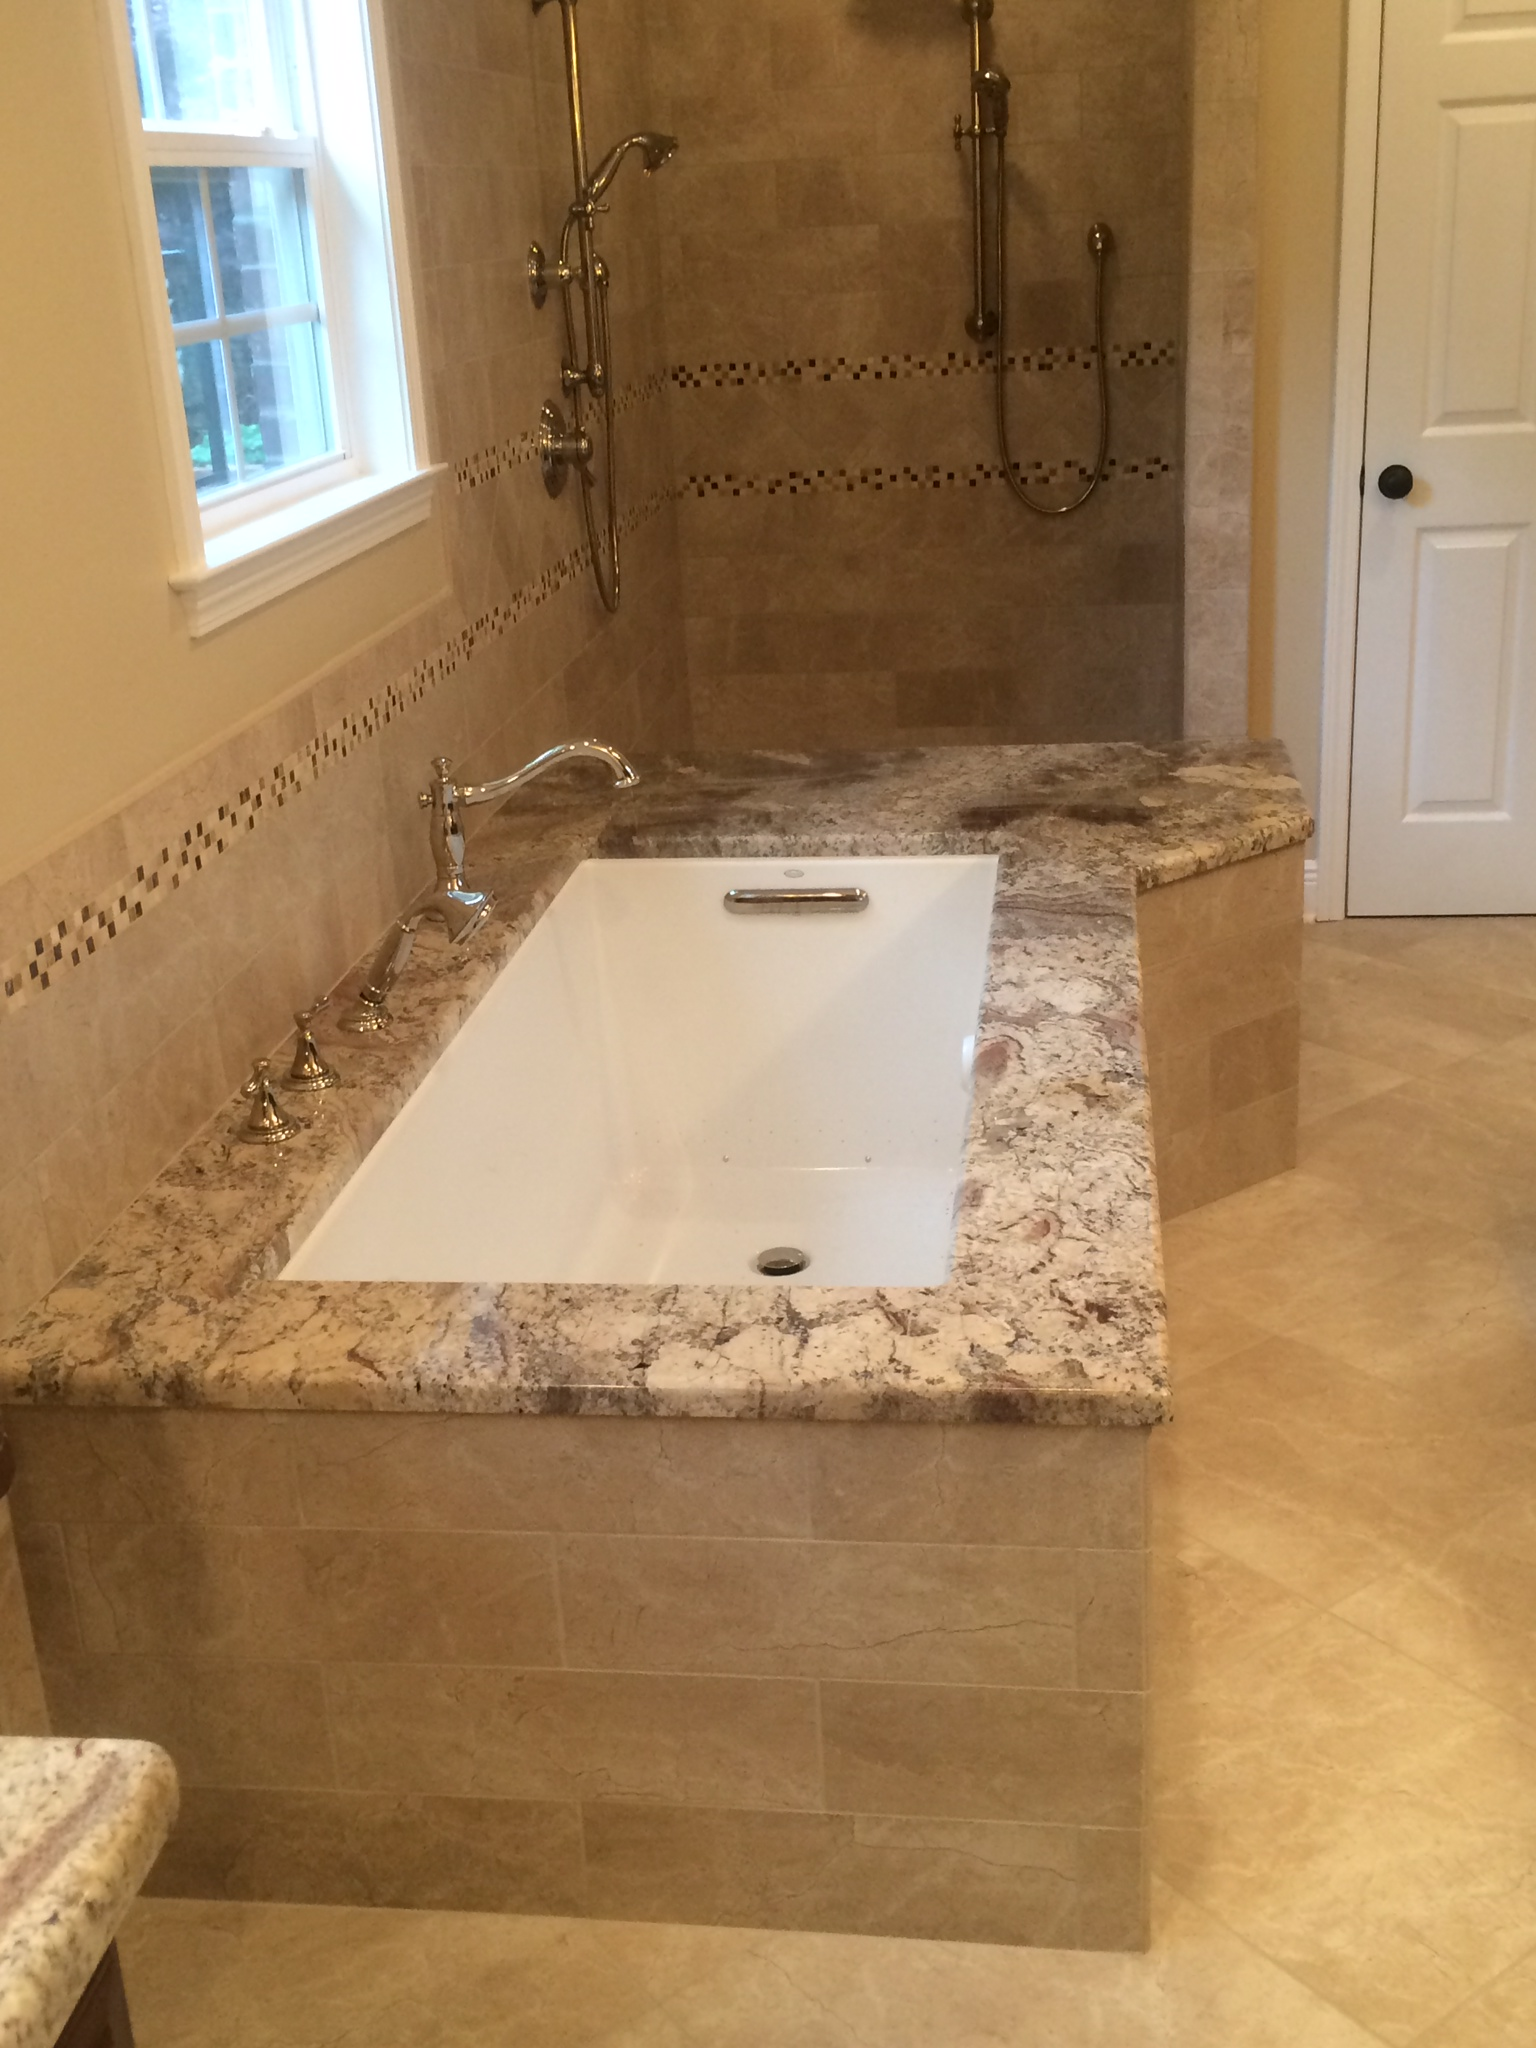 Kohler Tub And Shower : Kohler Undermount Tub Custom Home Remodeling in Gulfport, MS 228 ...